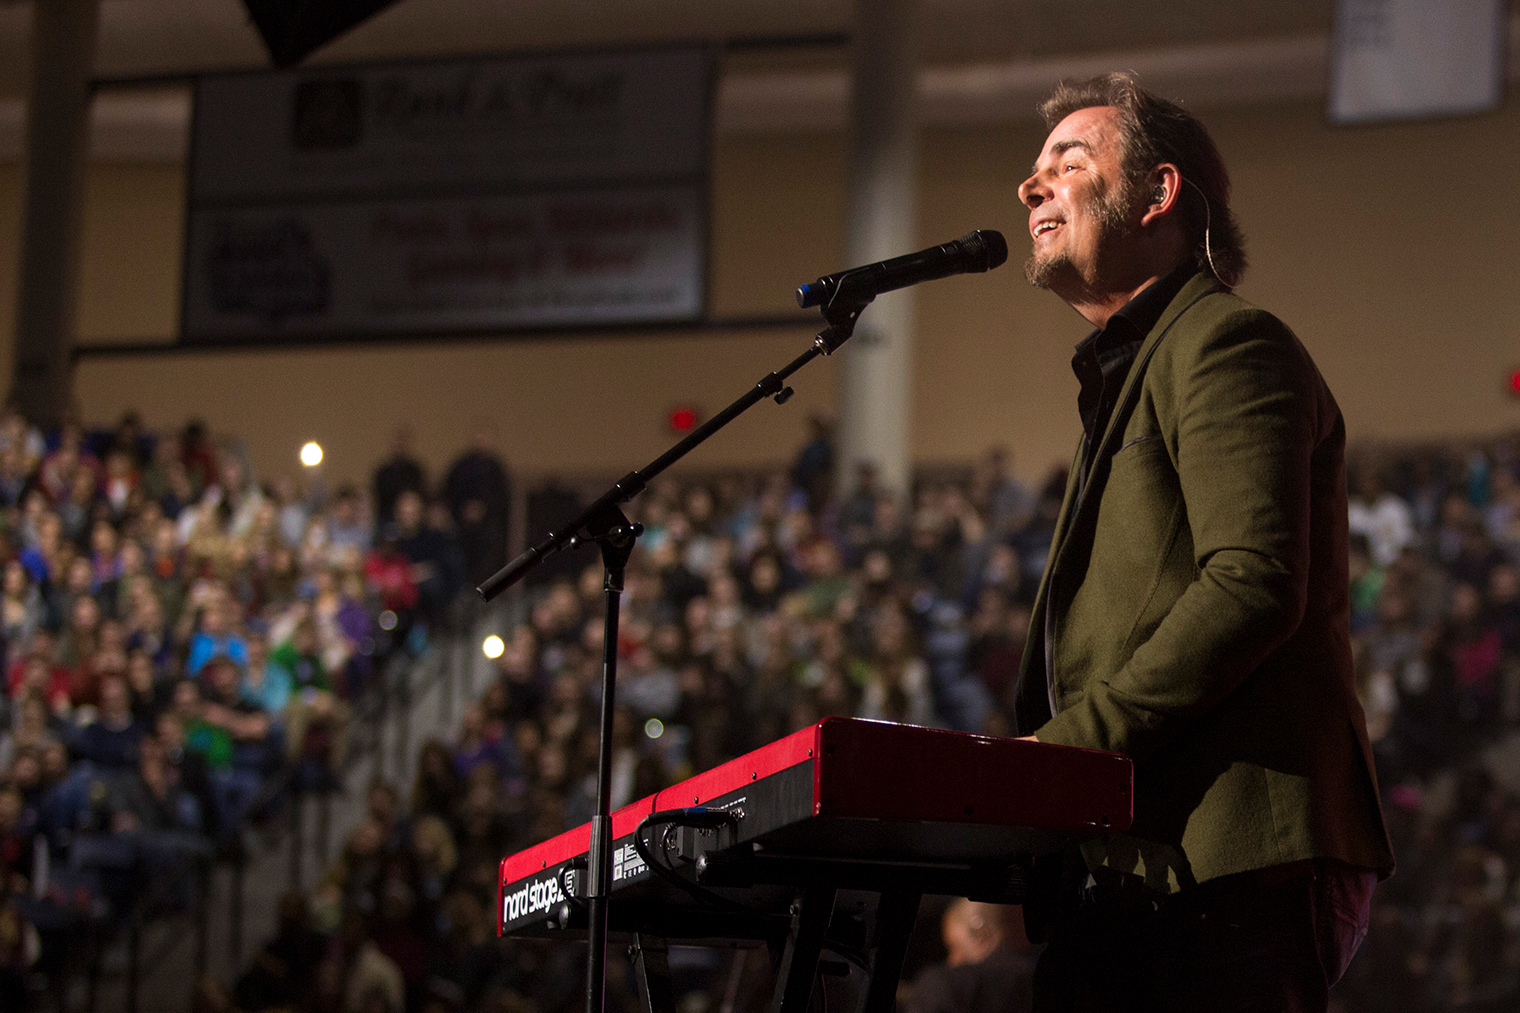 Jonathan Cain, a songwriter and member of the band Journey, shared some of his hit ballads during Convocation on Monday. (Photos by Jessie Rogers)